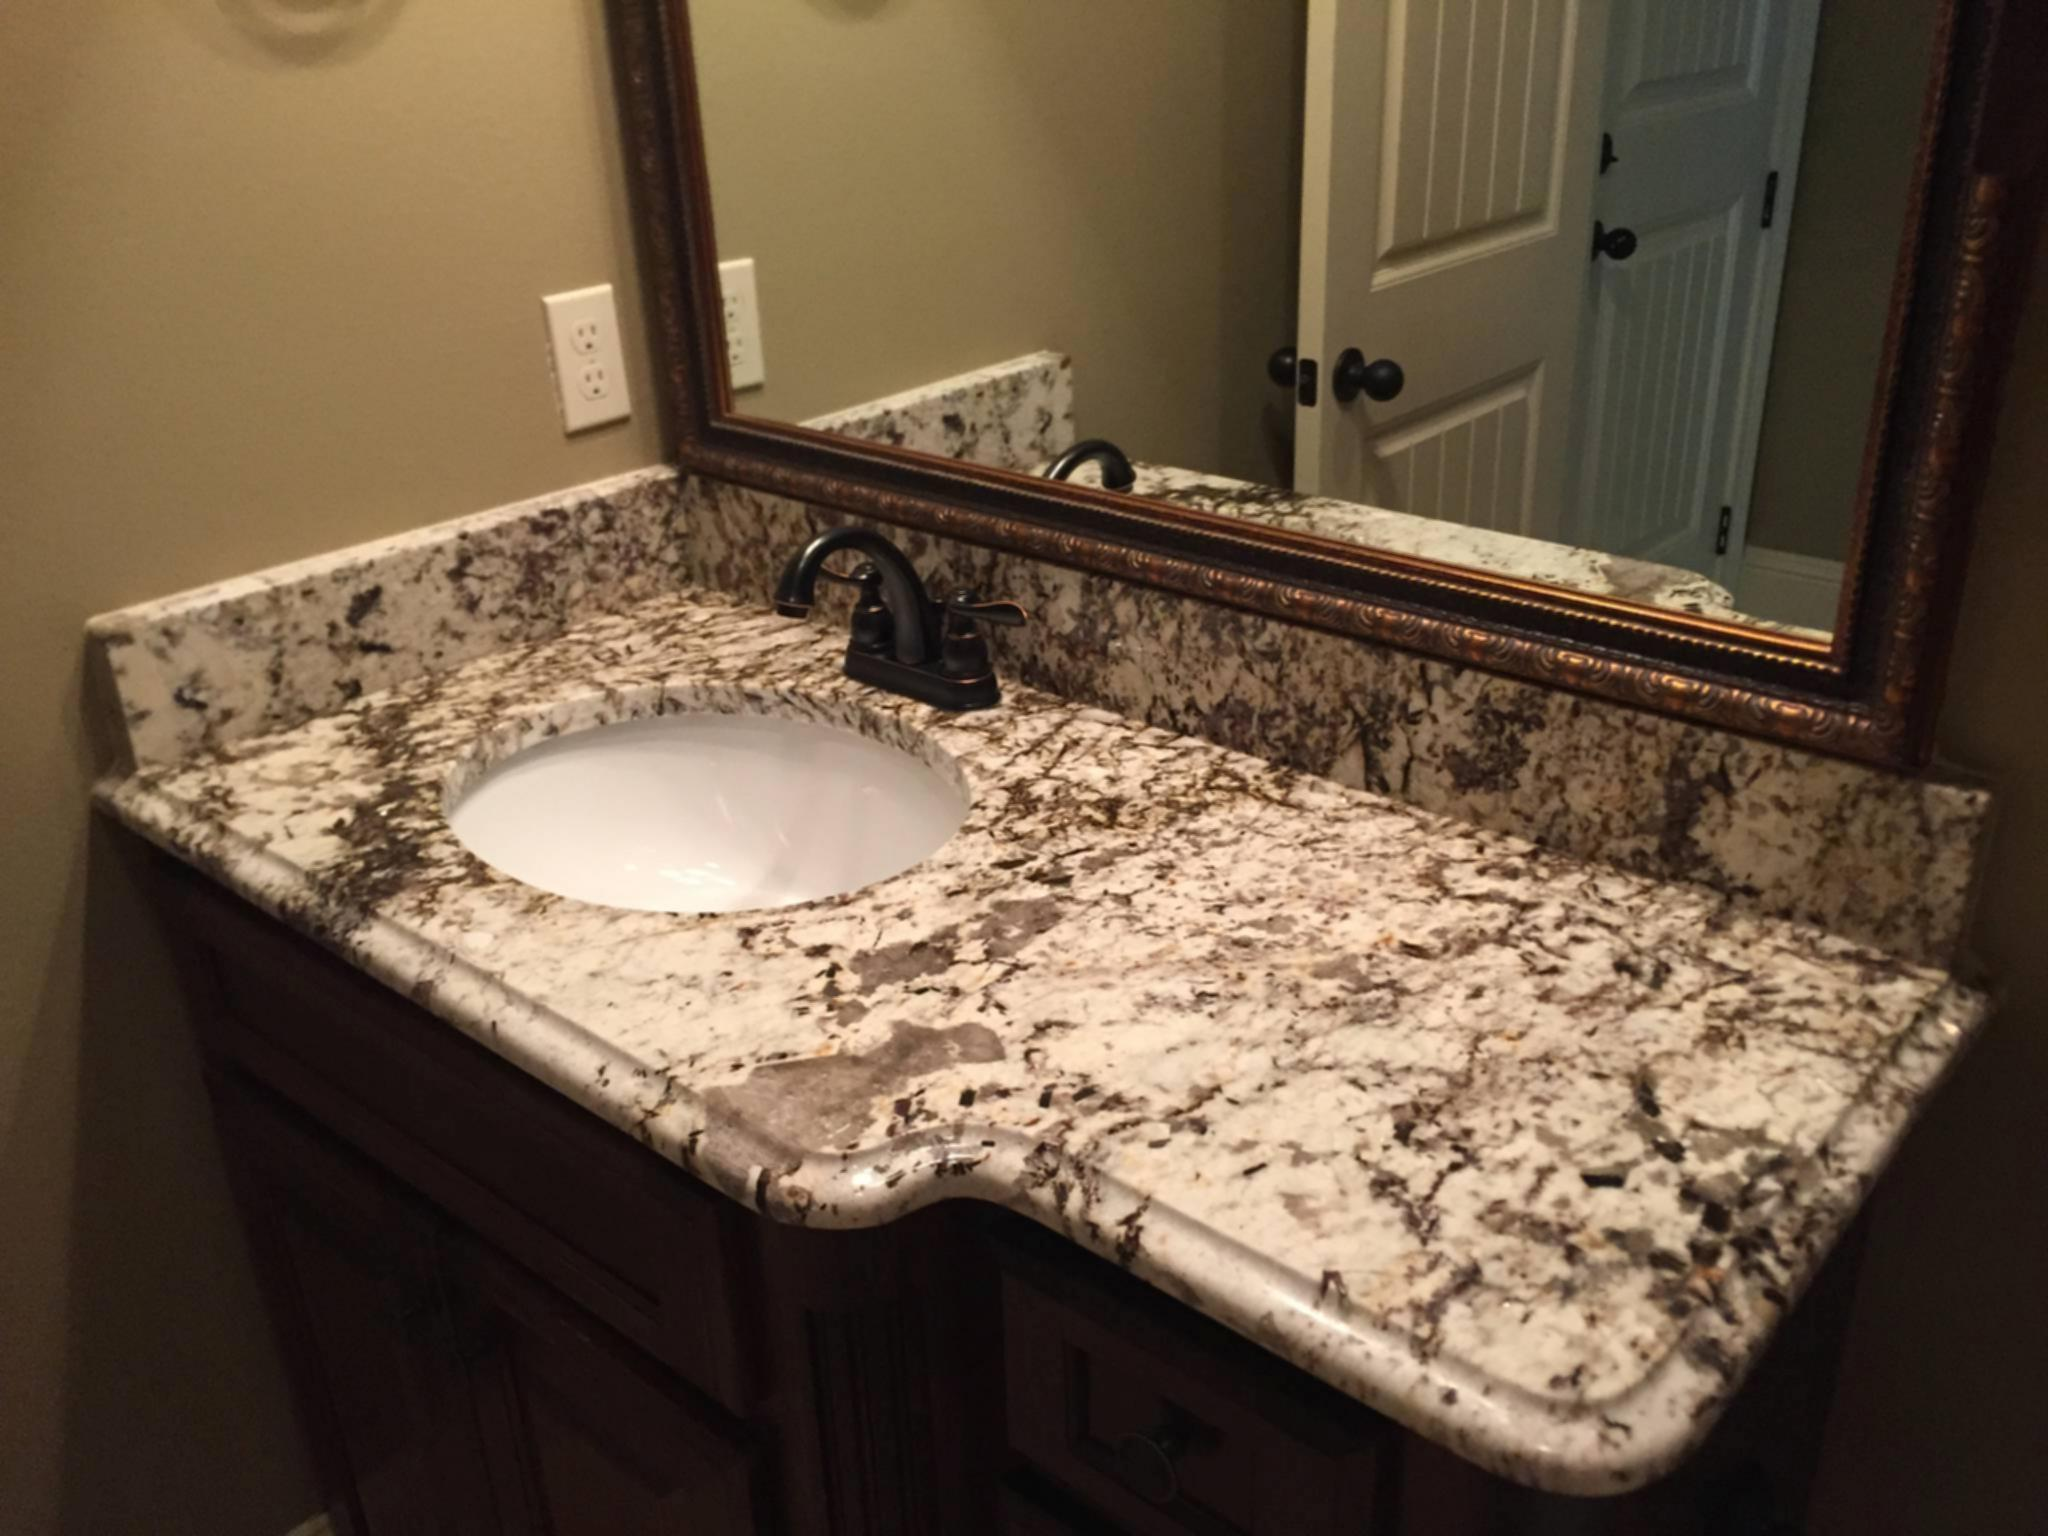 How To Install A Bathroom Countertop How To Replace Bathroom Countertop And Sink Tyres2c